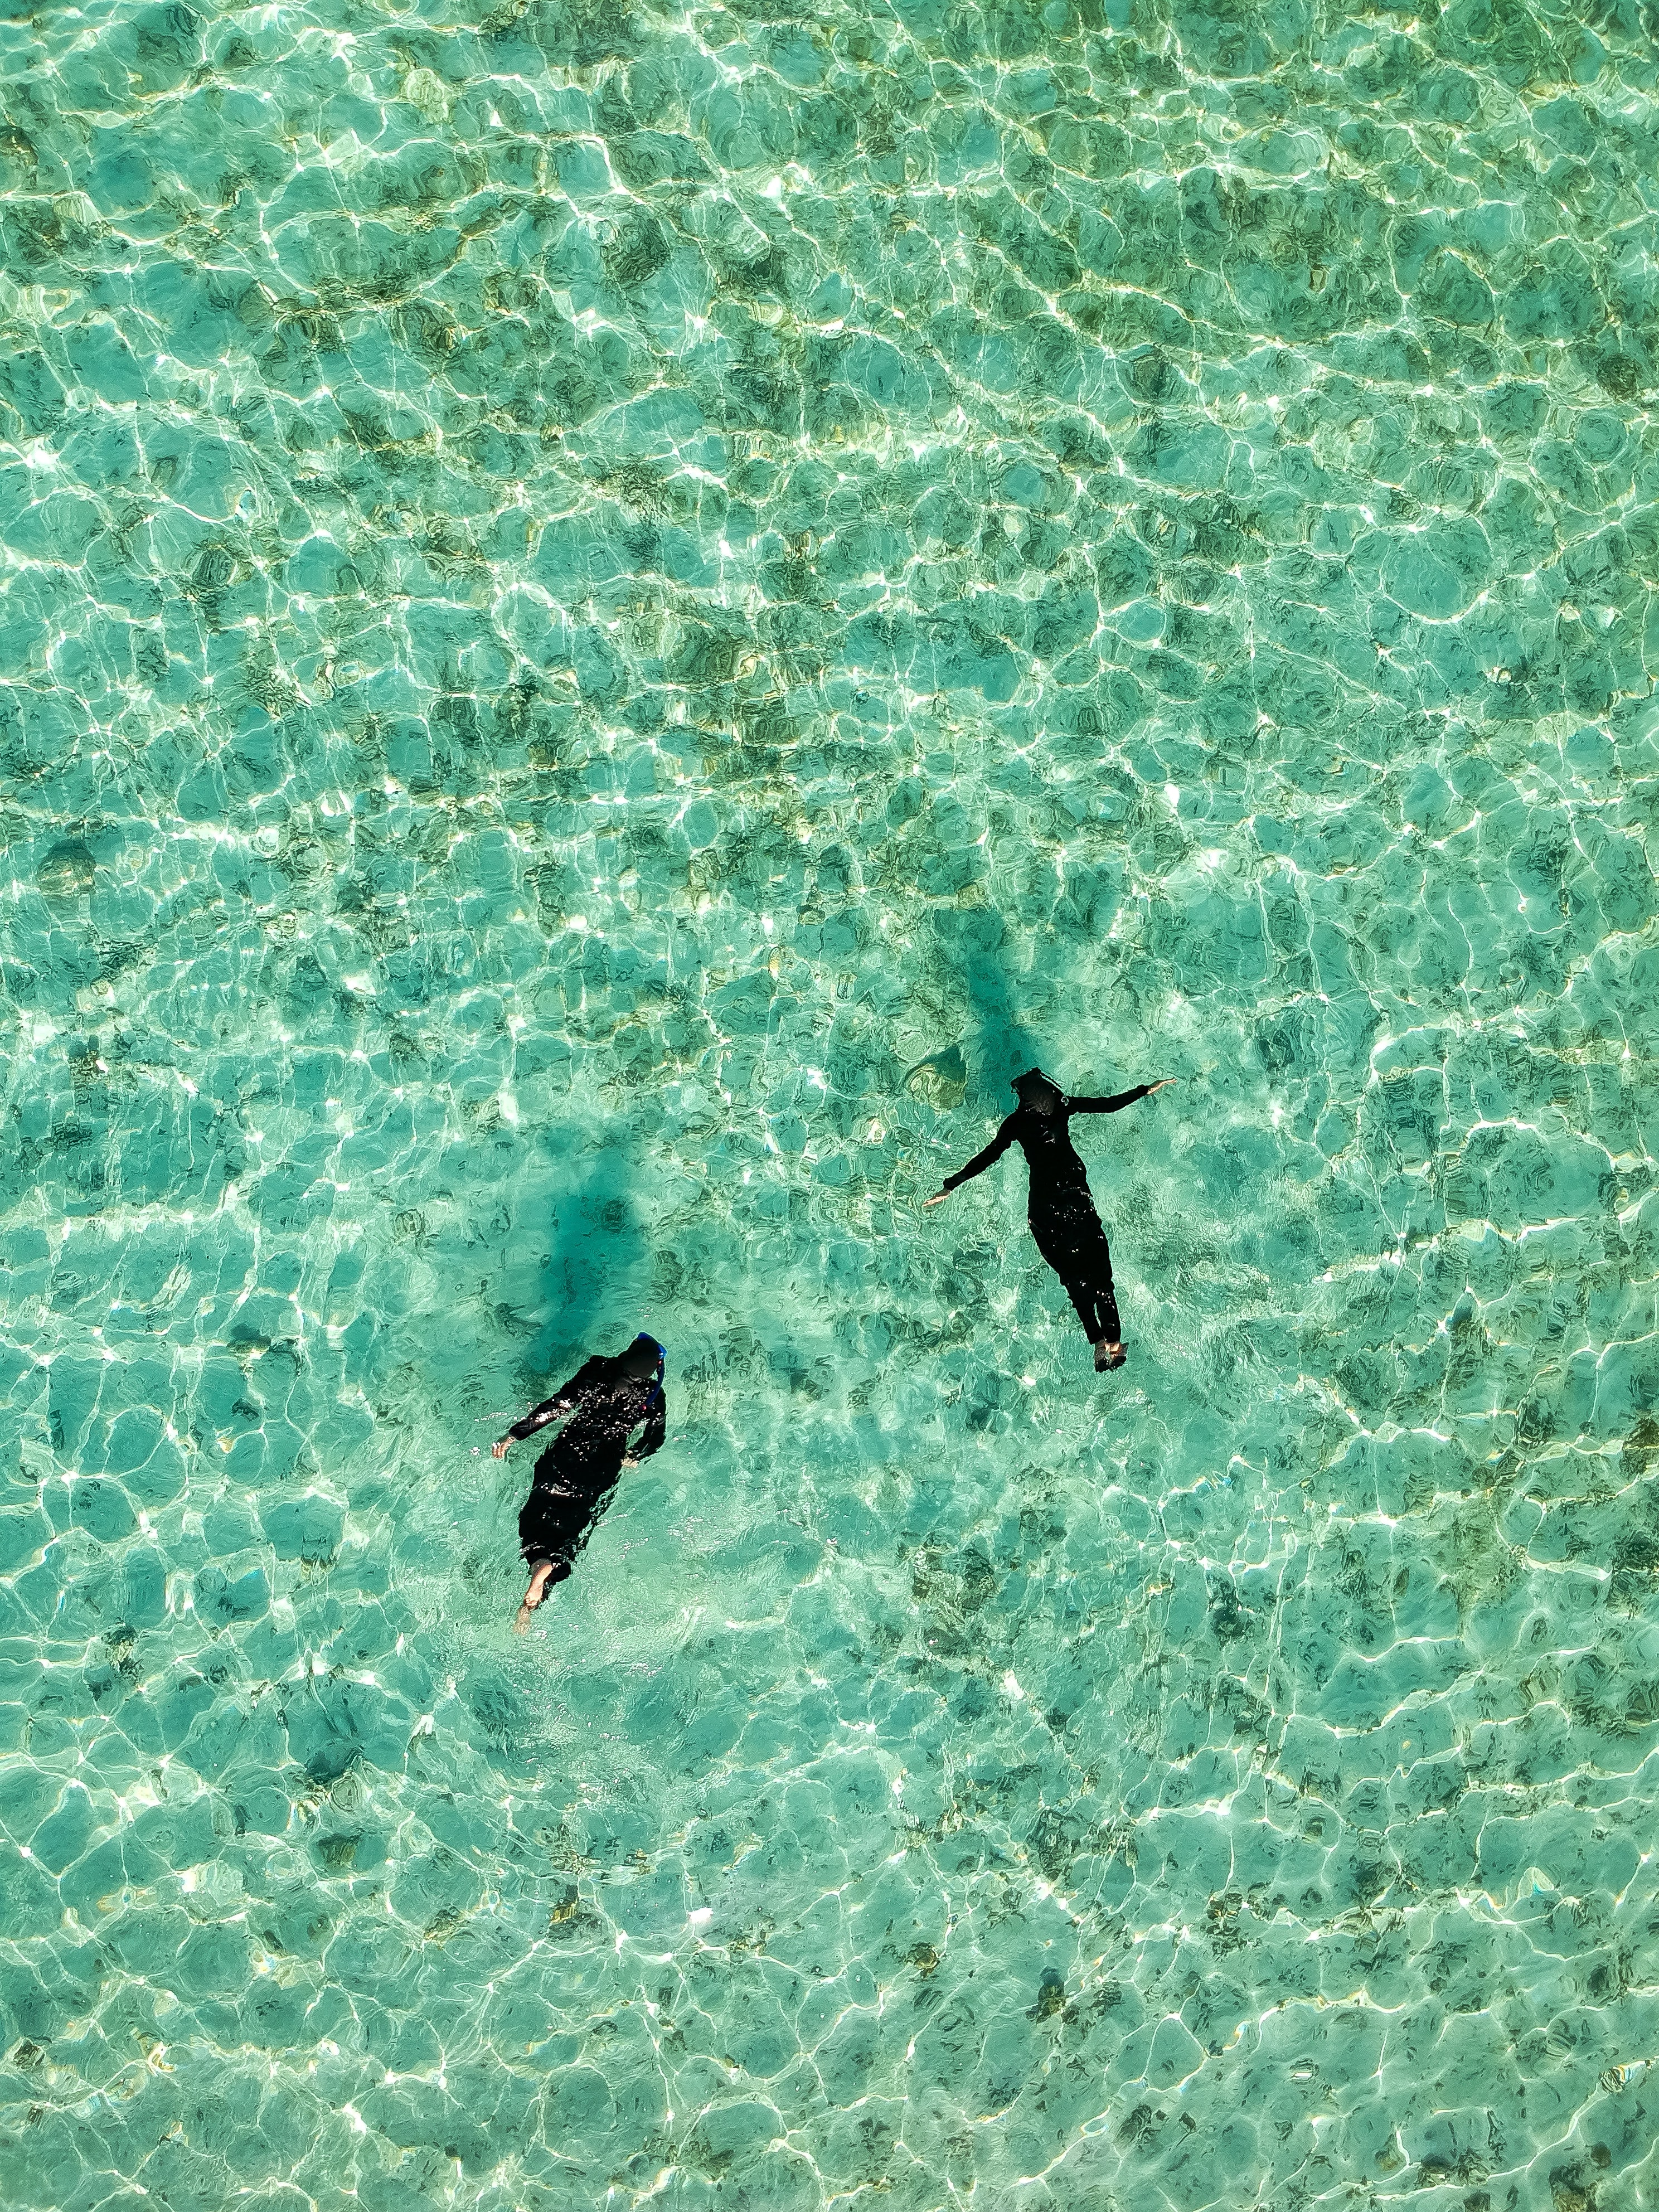 aerial photo of two human swimming on body of water